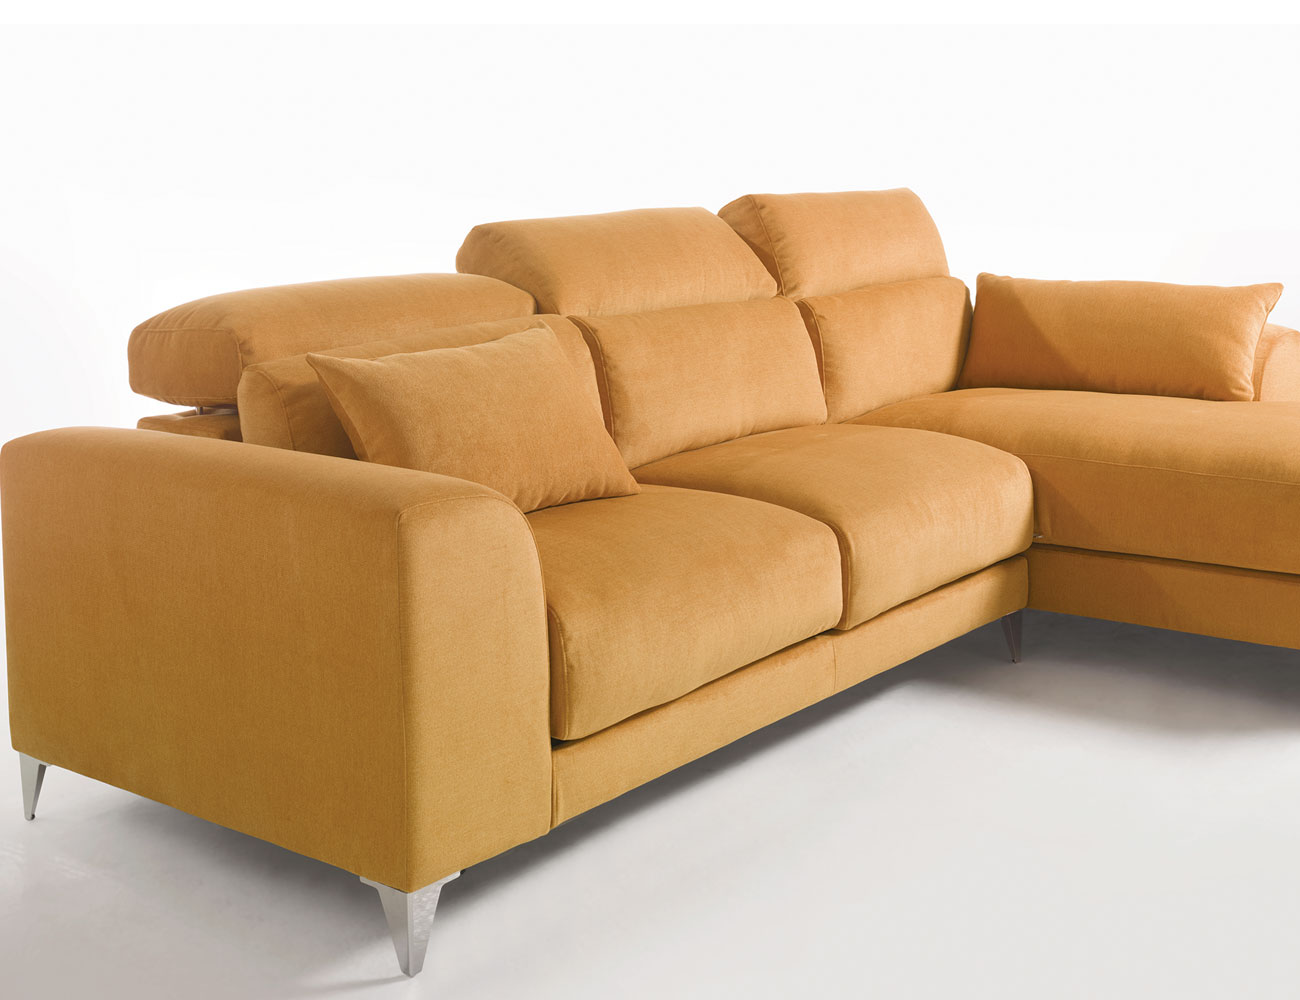 Sofa chaiselongue gran lujo decorativo patas altas amarillo 232